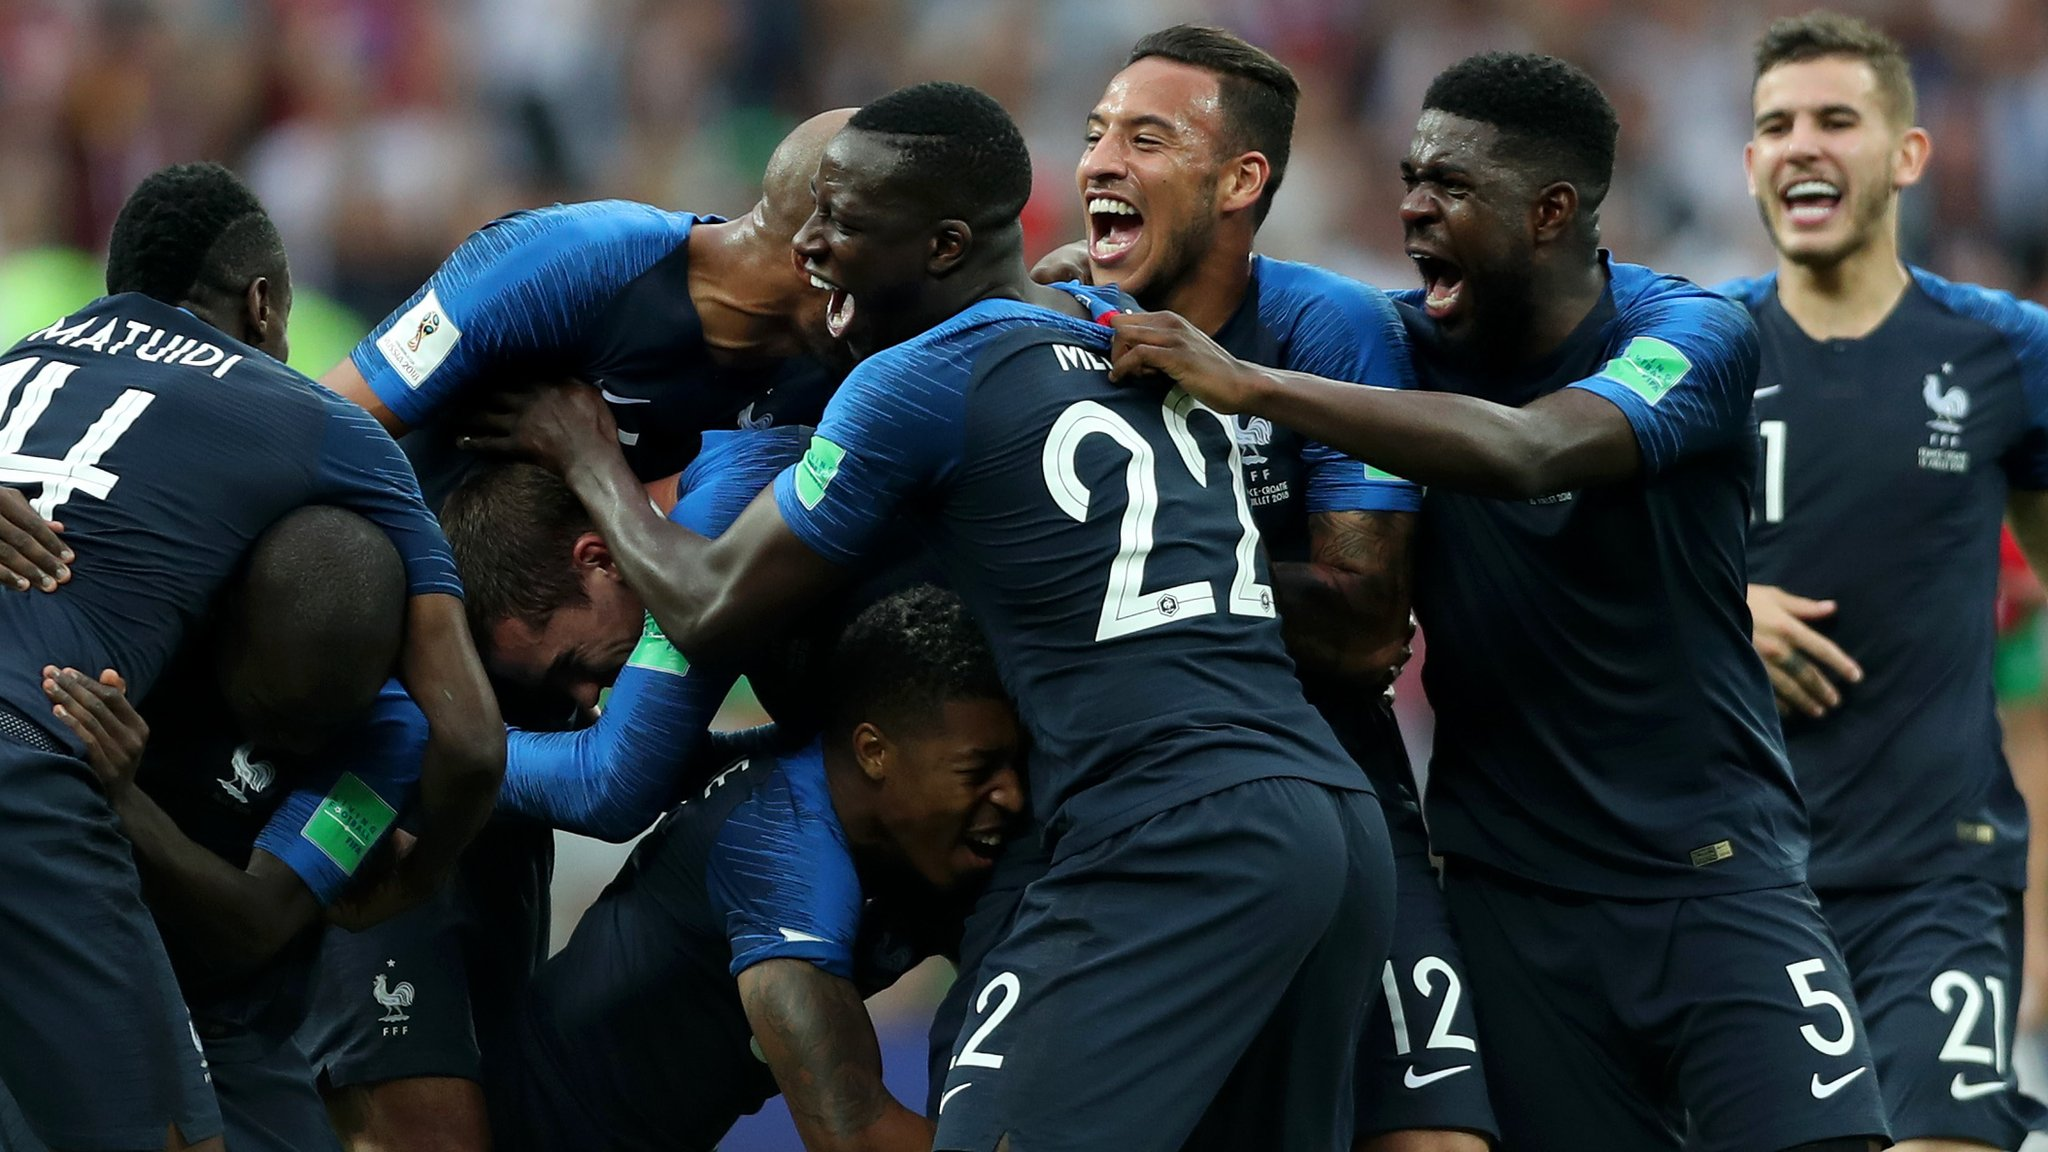 World Cup 2018: France beat Croatia 4-2 in World Cup final | BBC